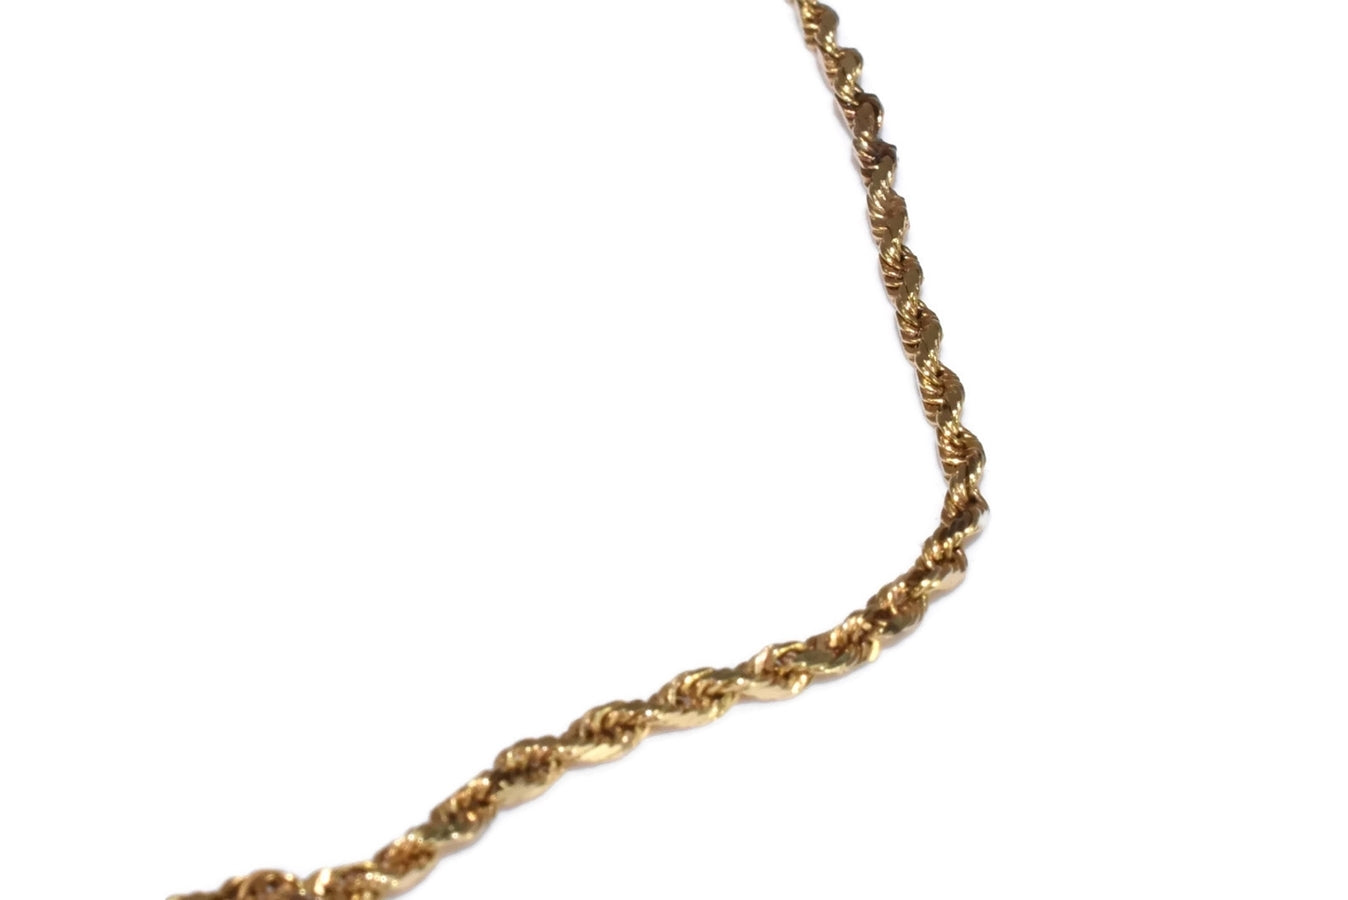 dainty filled chain bracelet everyday gold delicate made pin simple custom